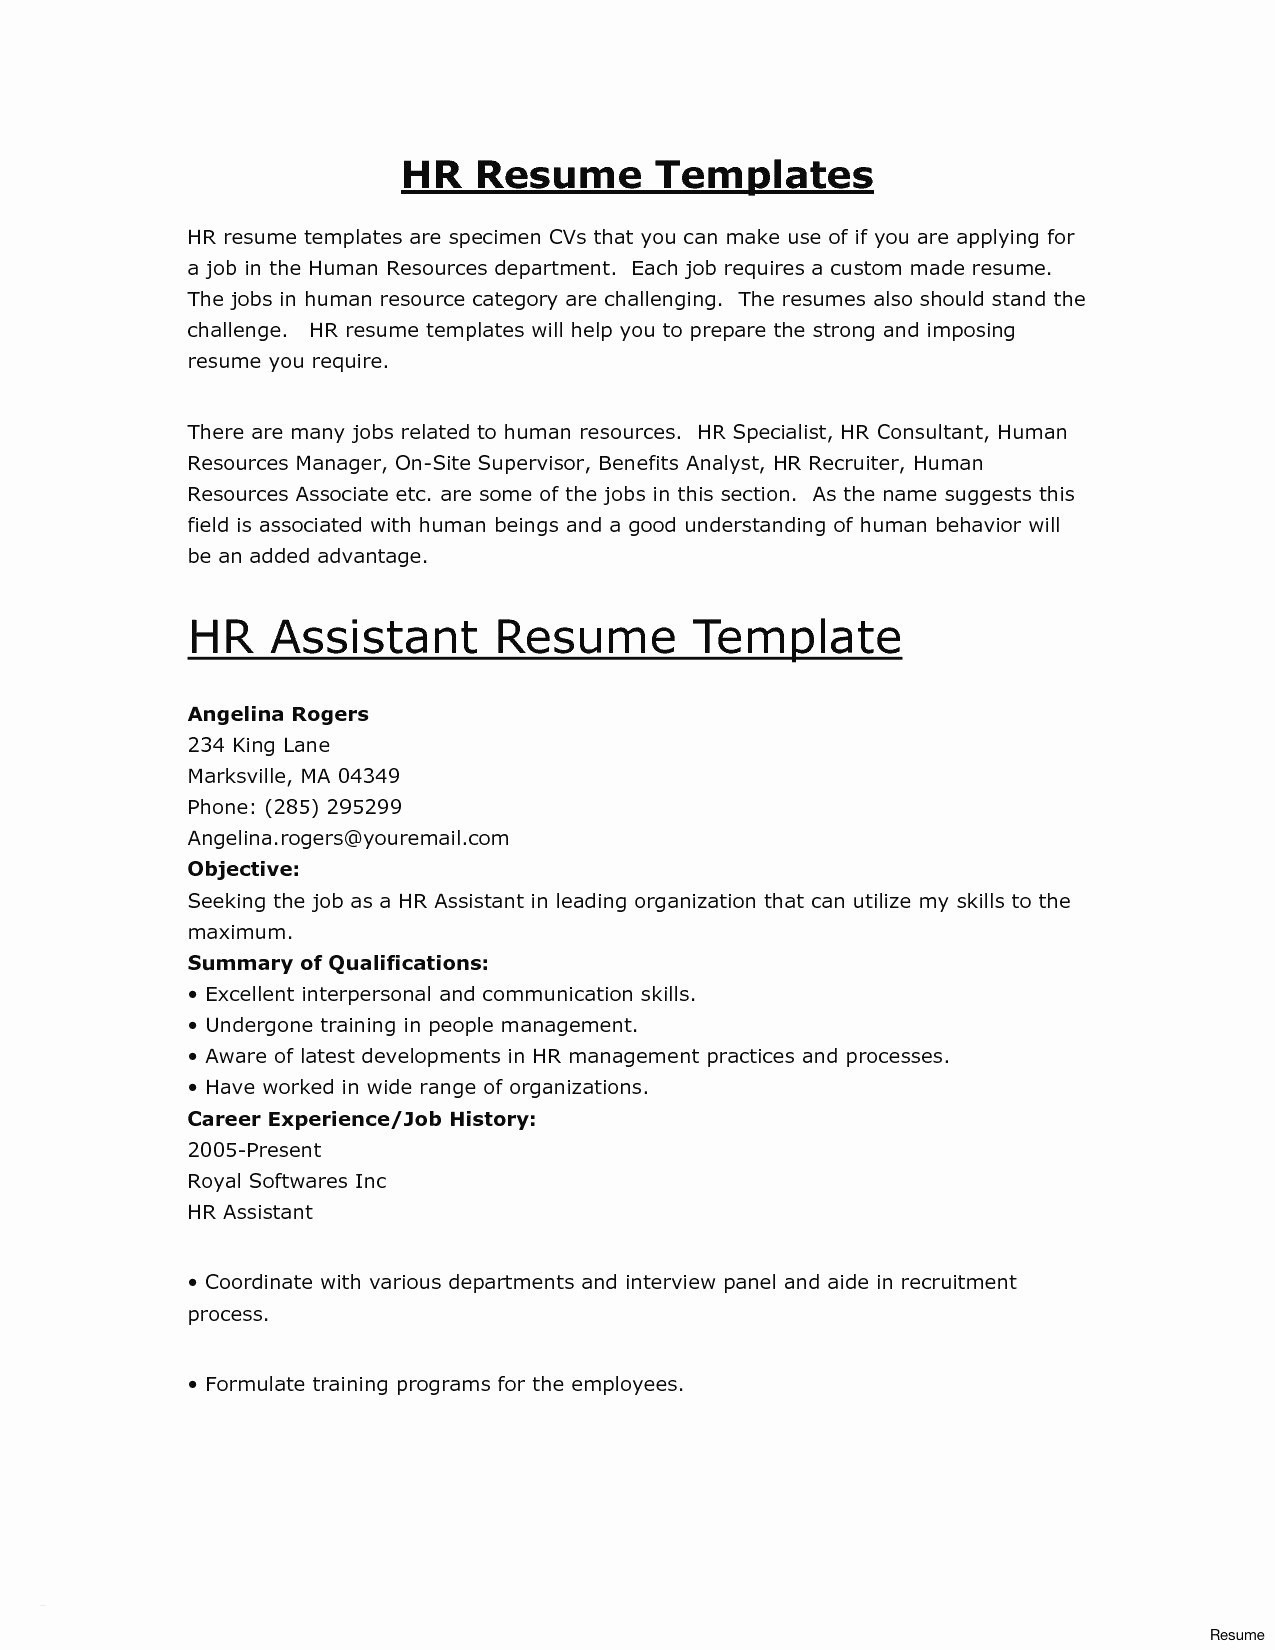 self employed resume template Collection-Self Employed Resume New Luxury Examples Resumes Ecologist Resume 0d Information 17-n